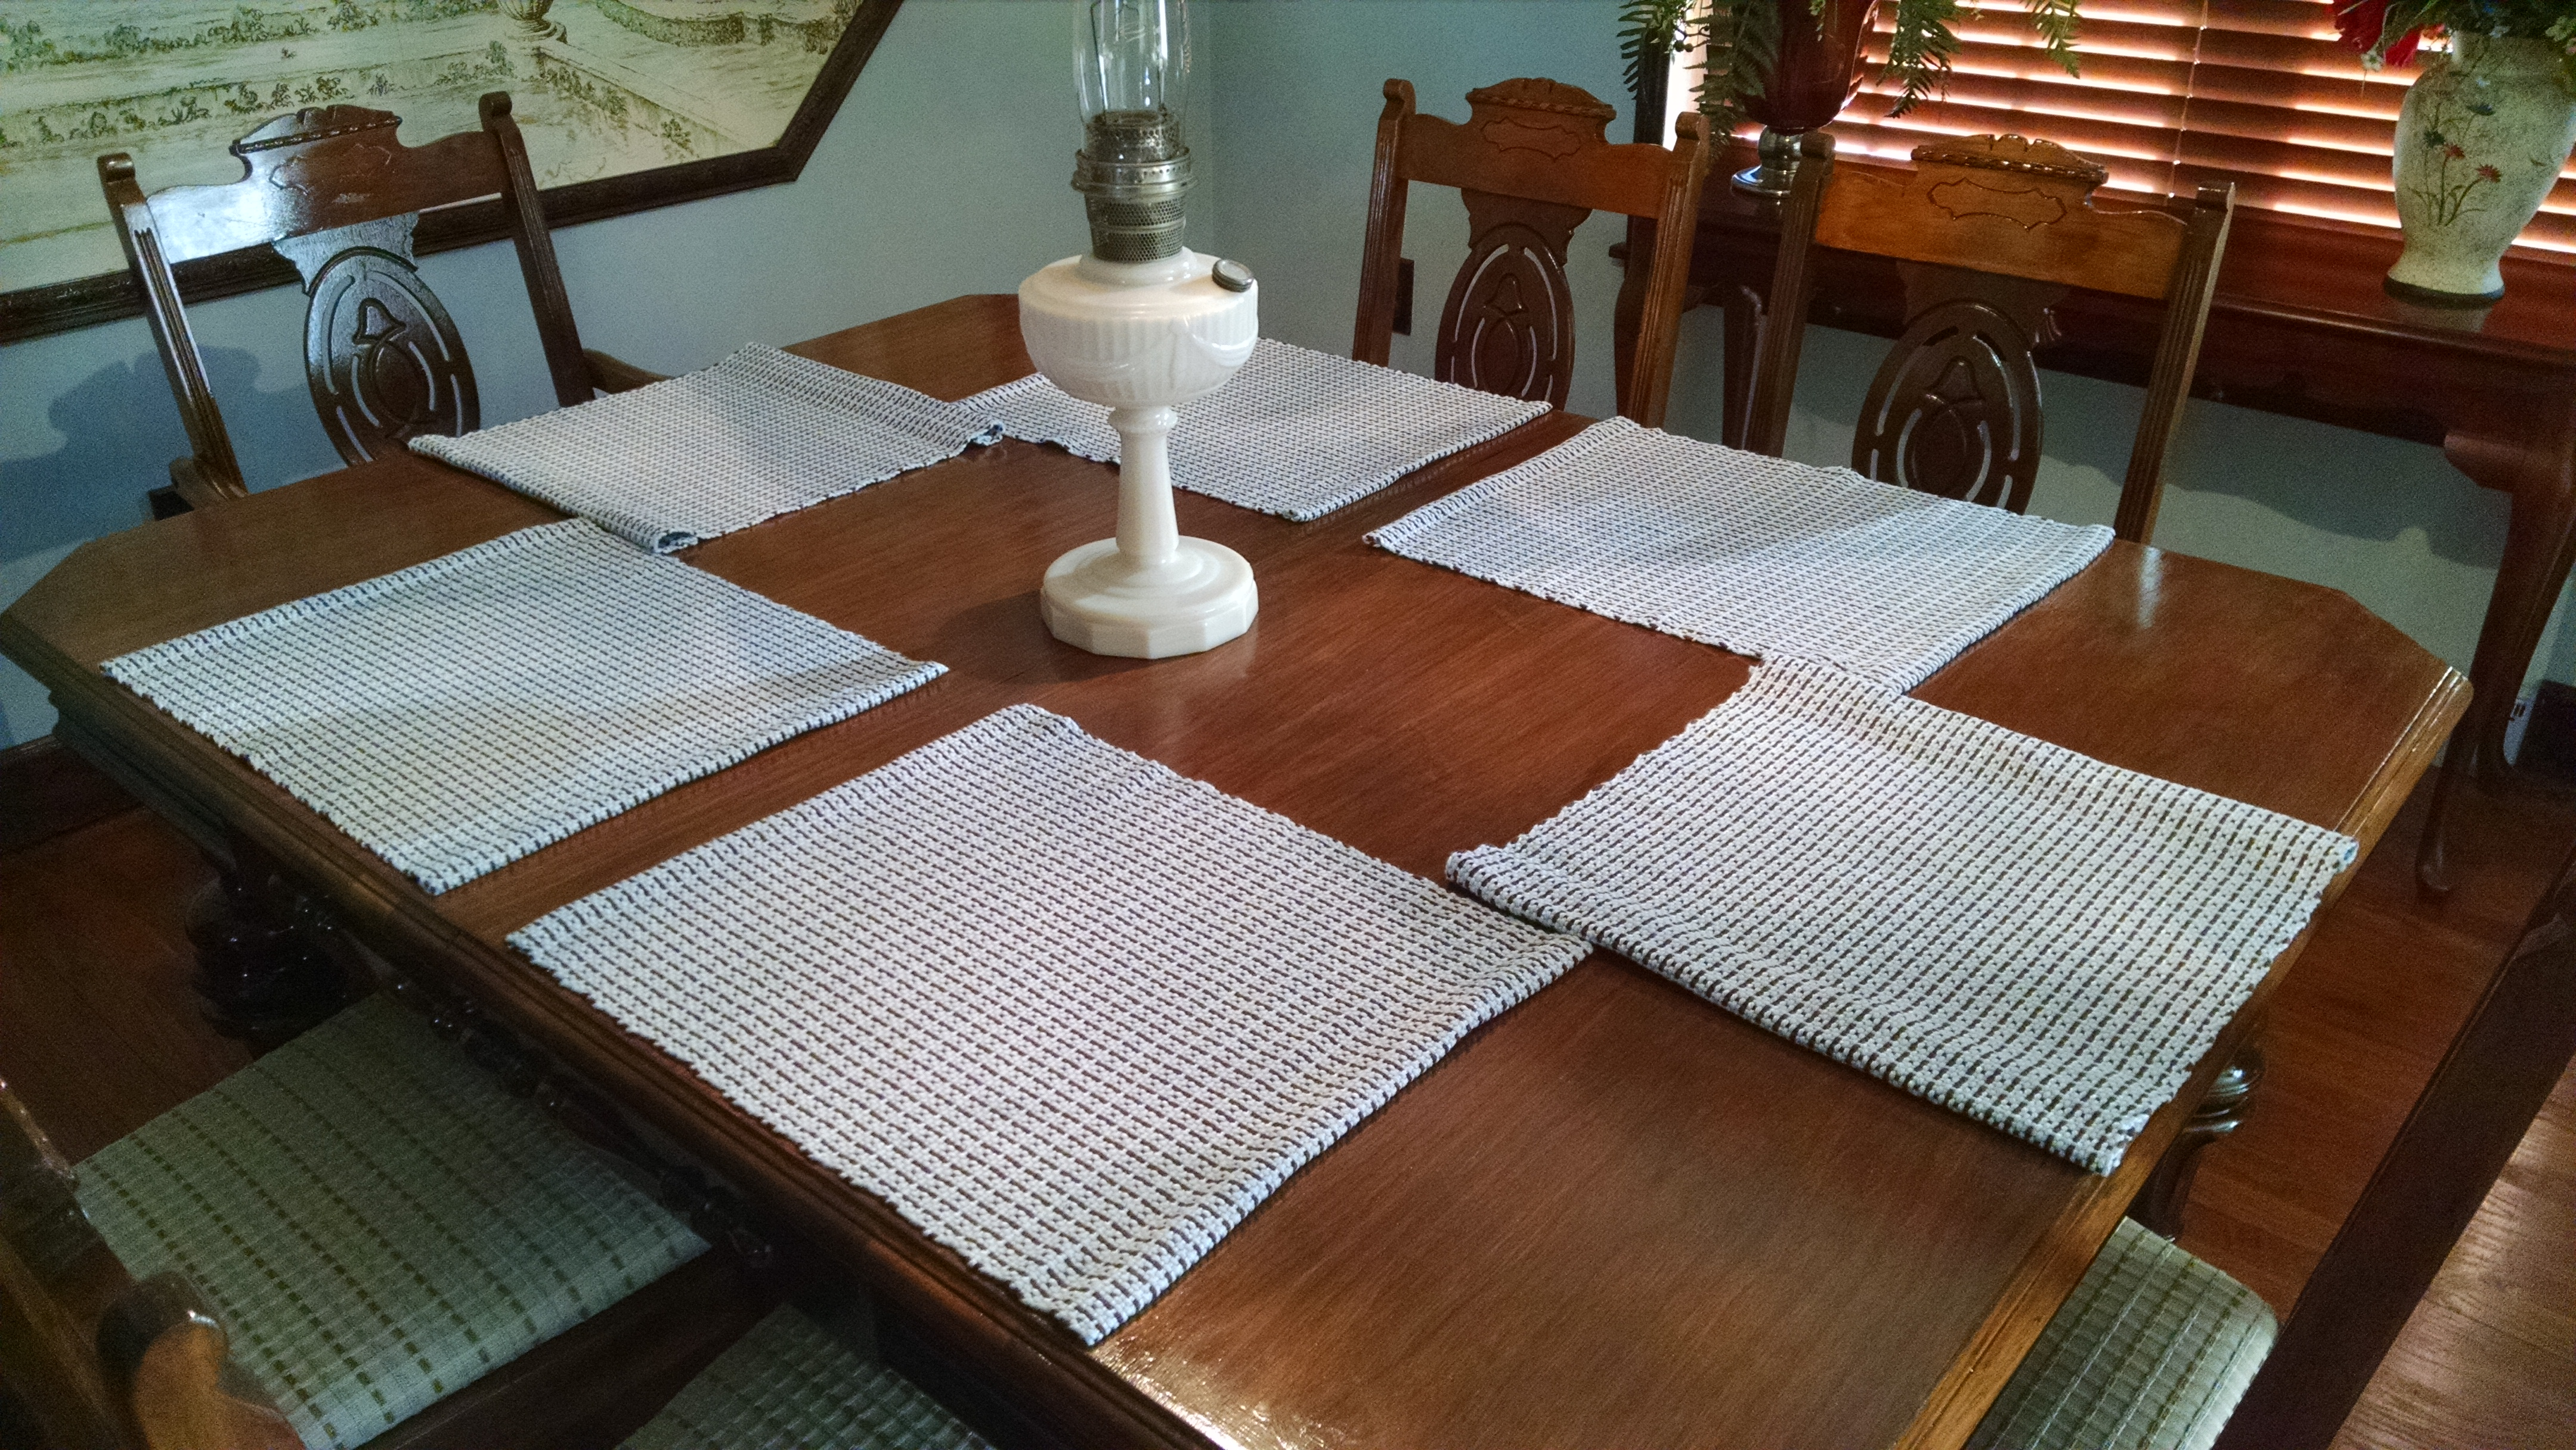 Christmas Gift Handwoven Placemats – Lili & Mum s